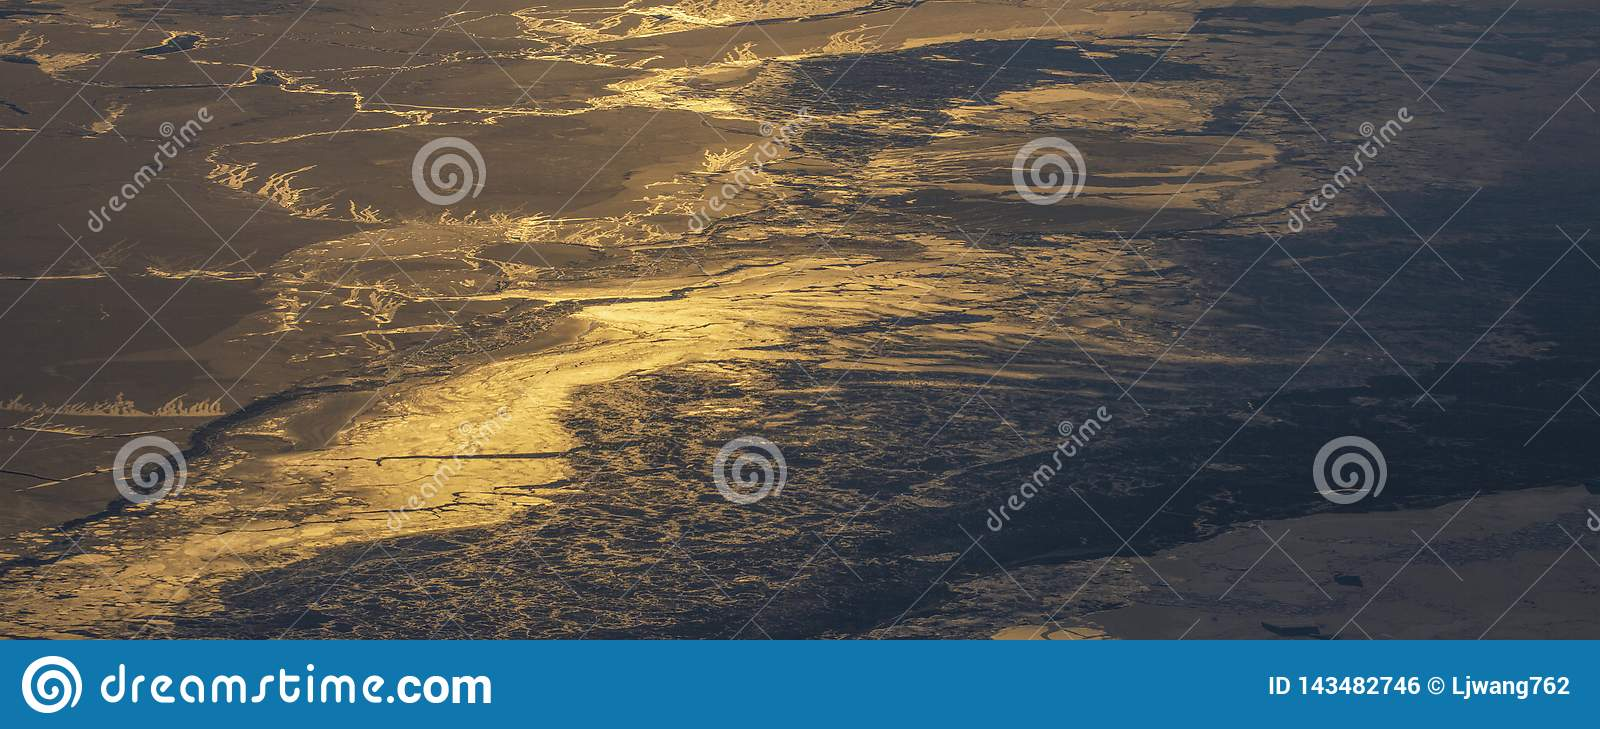 19Take an aerial view of the ice and sunrise over the bering strait.(1)